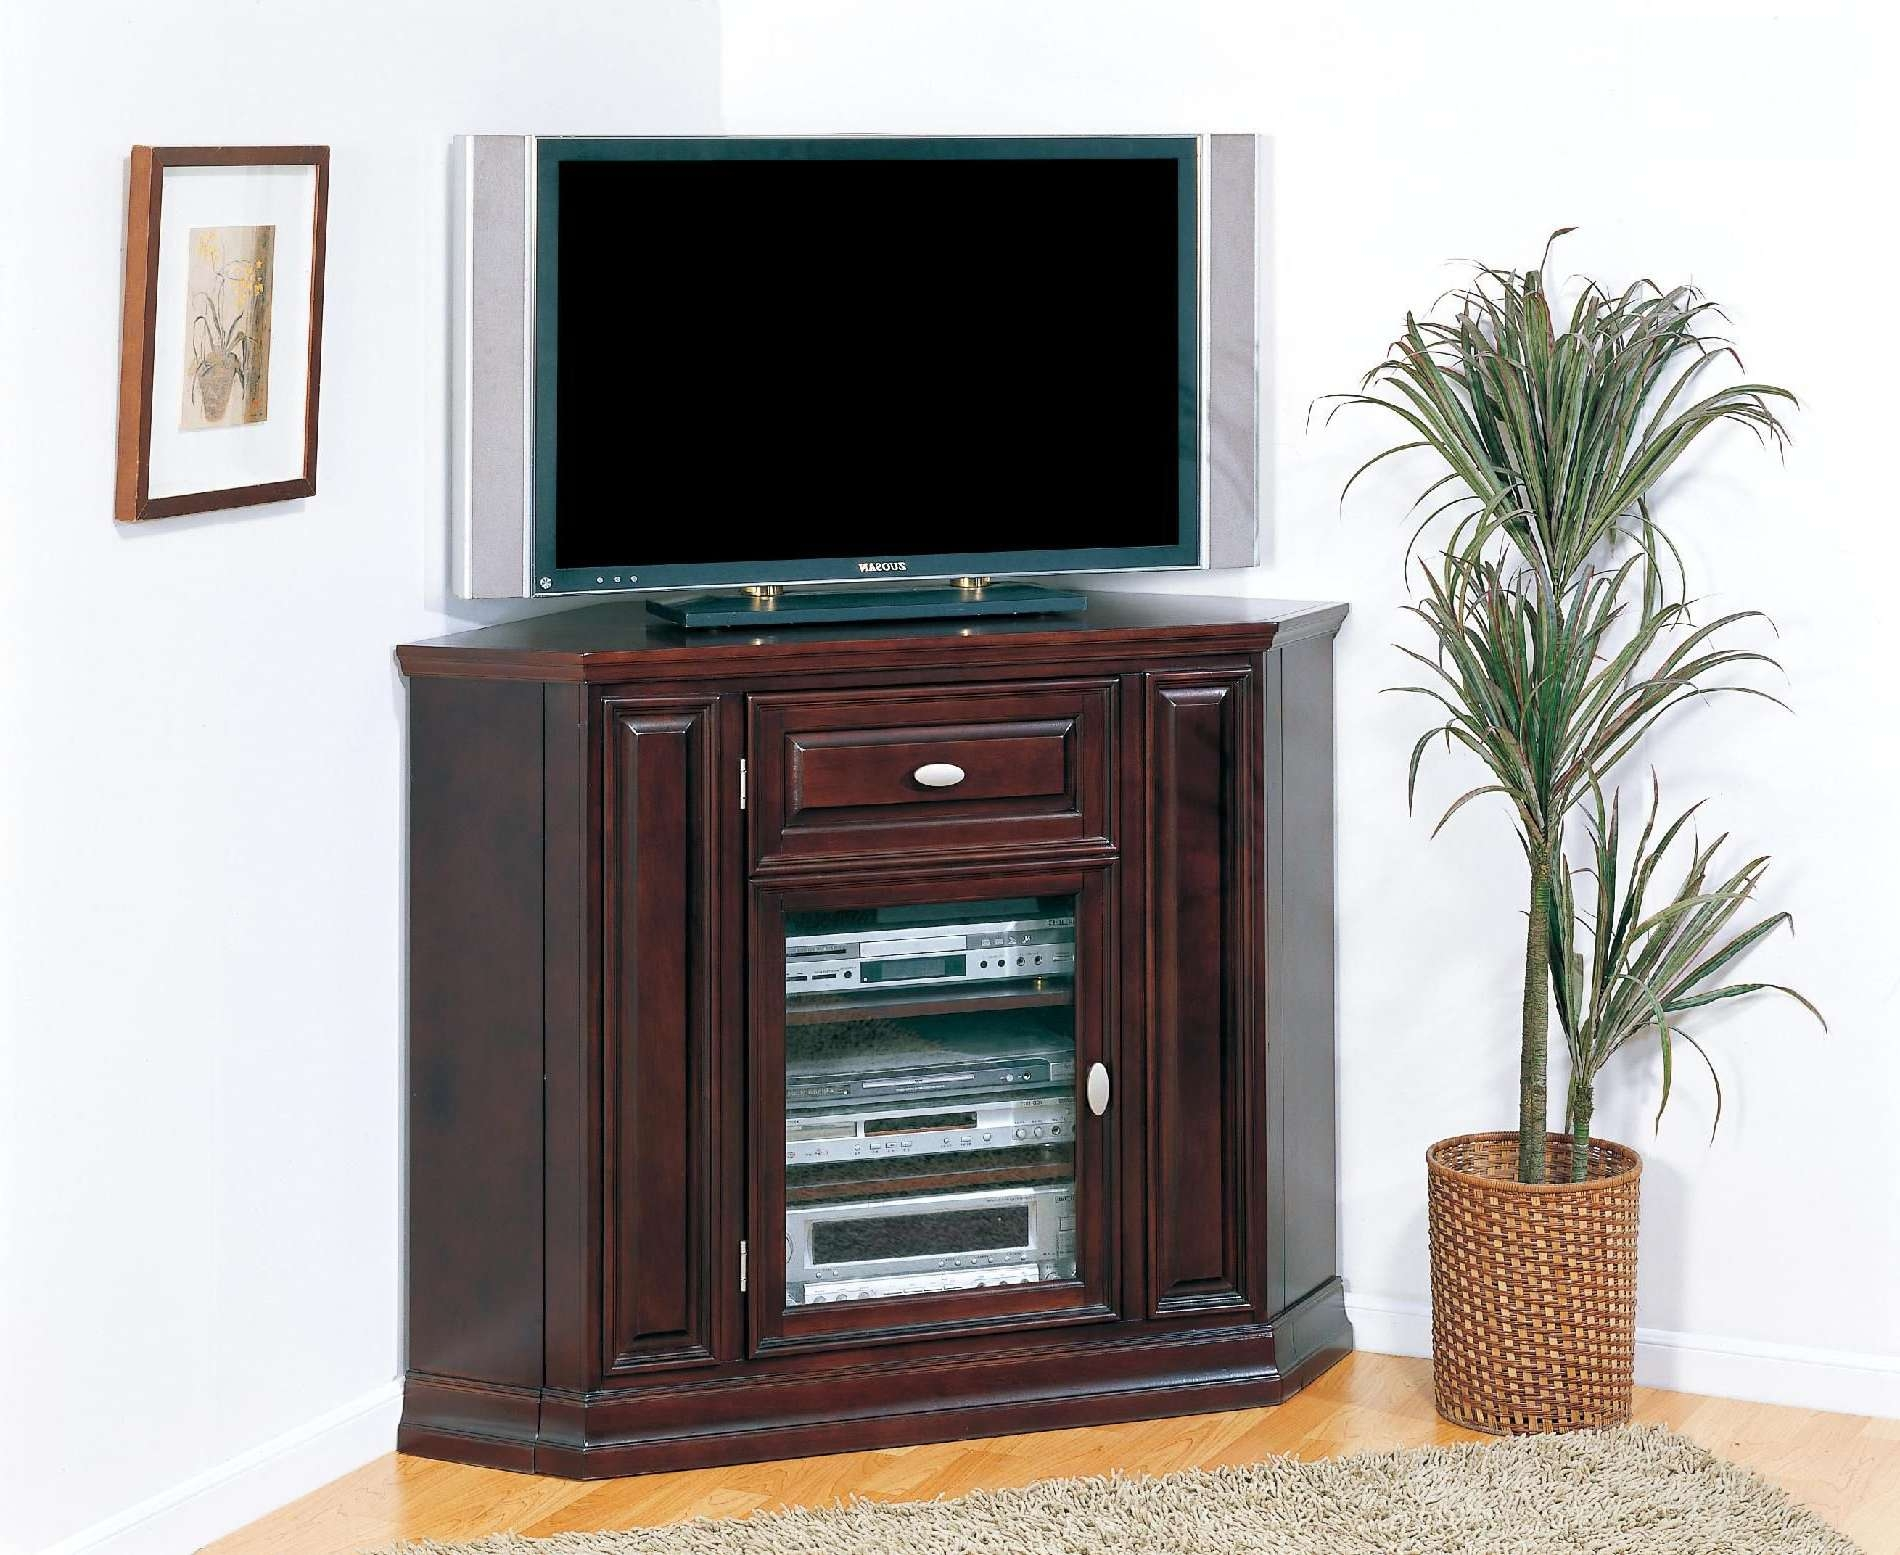 Kitchen Design : Wonderful Tall Dark Brown Wood Corner Tv Cabinet Inside Dark Brown Corner Tv Stands (View 12 of 15)